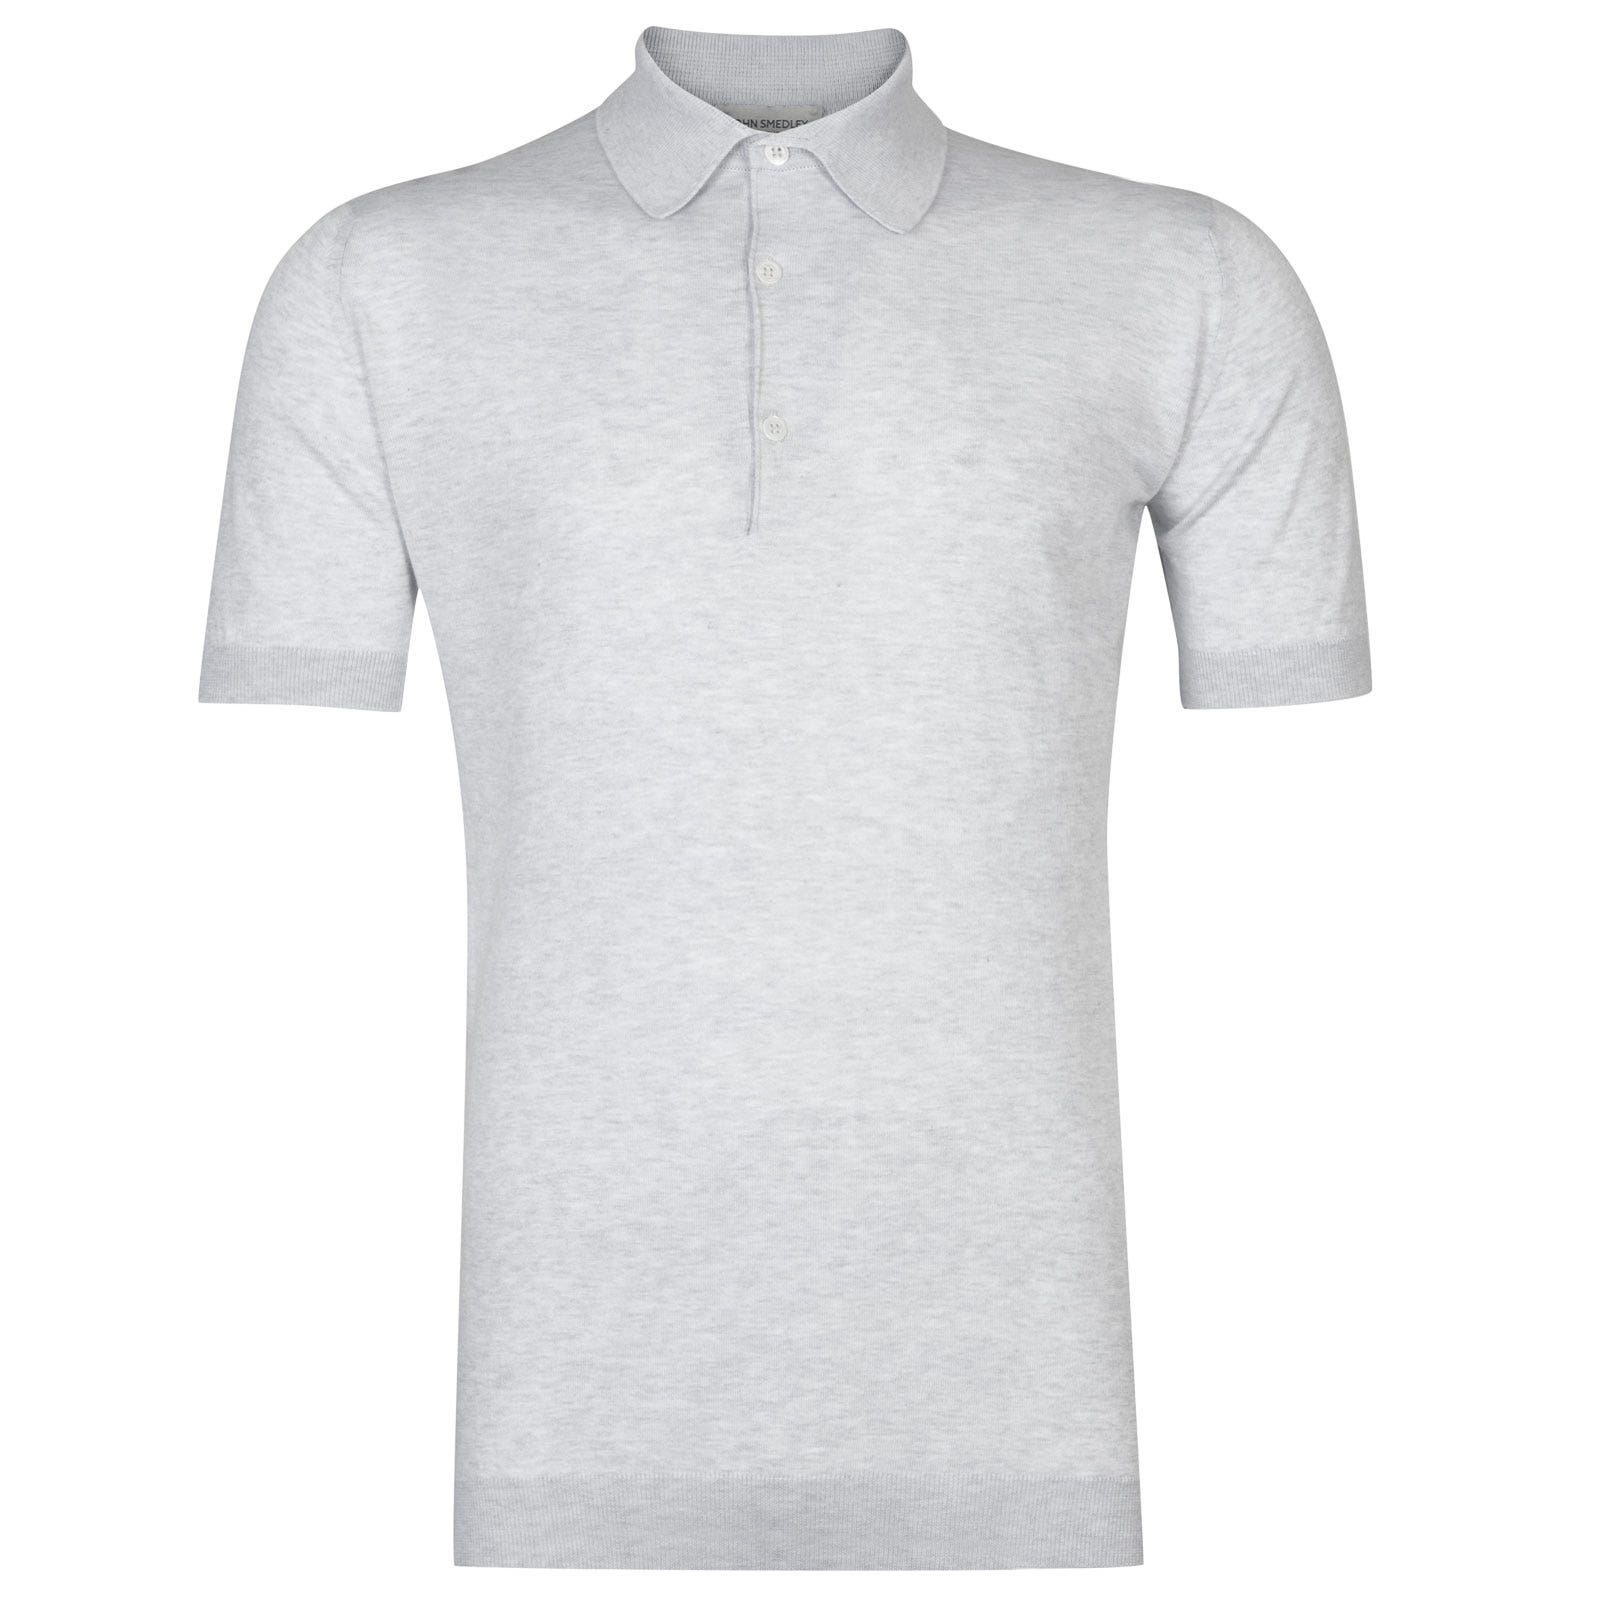 John Smedley adrian Sea Island Cotton Shirt in Feather Grey-L